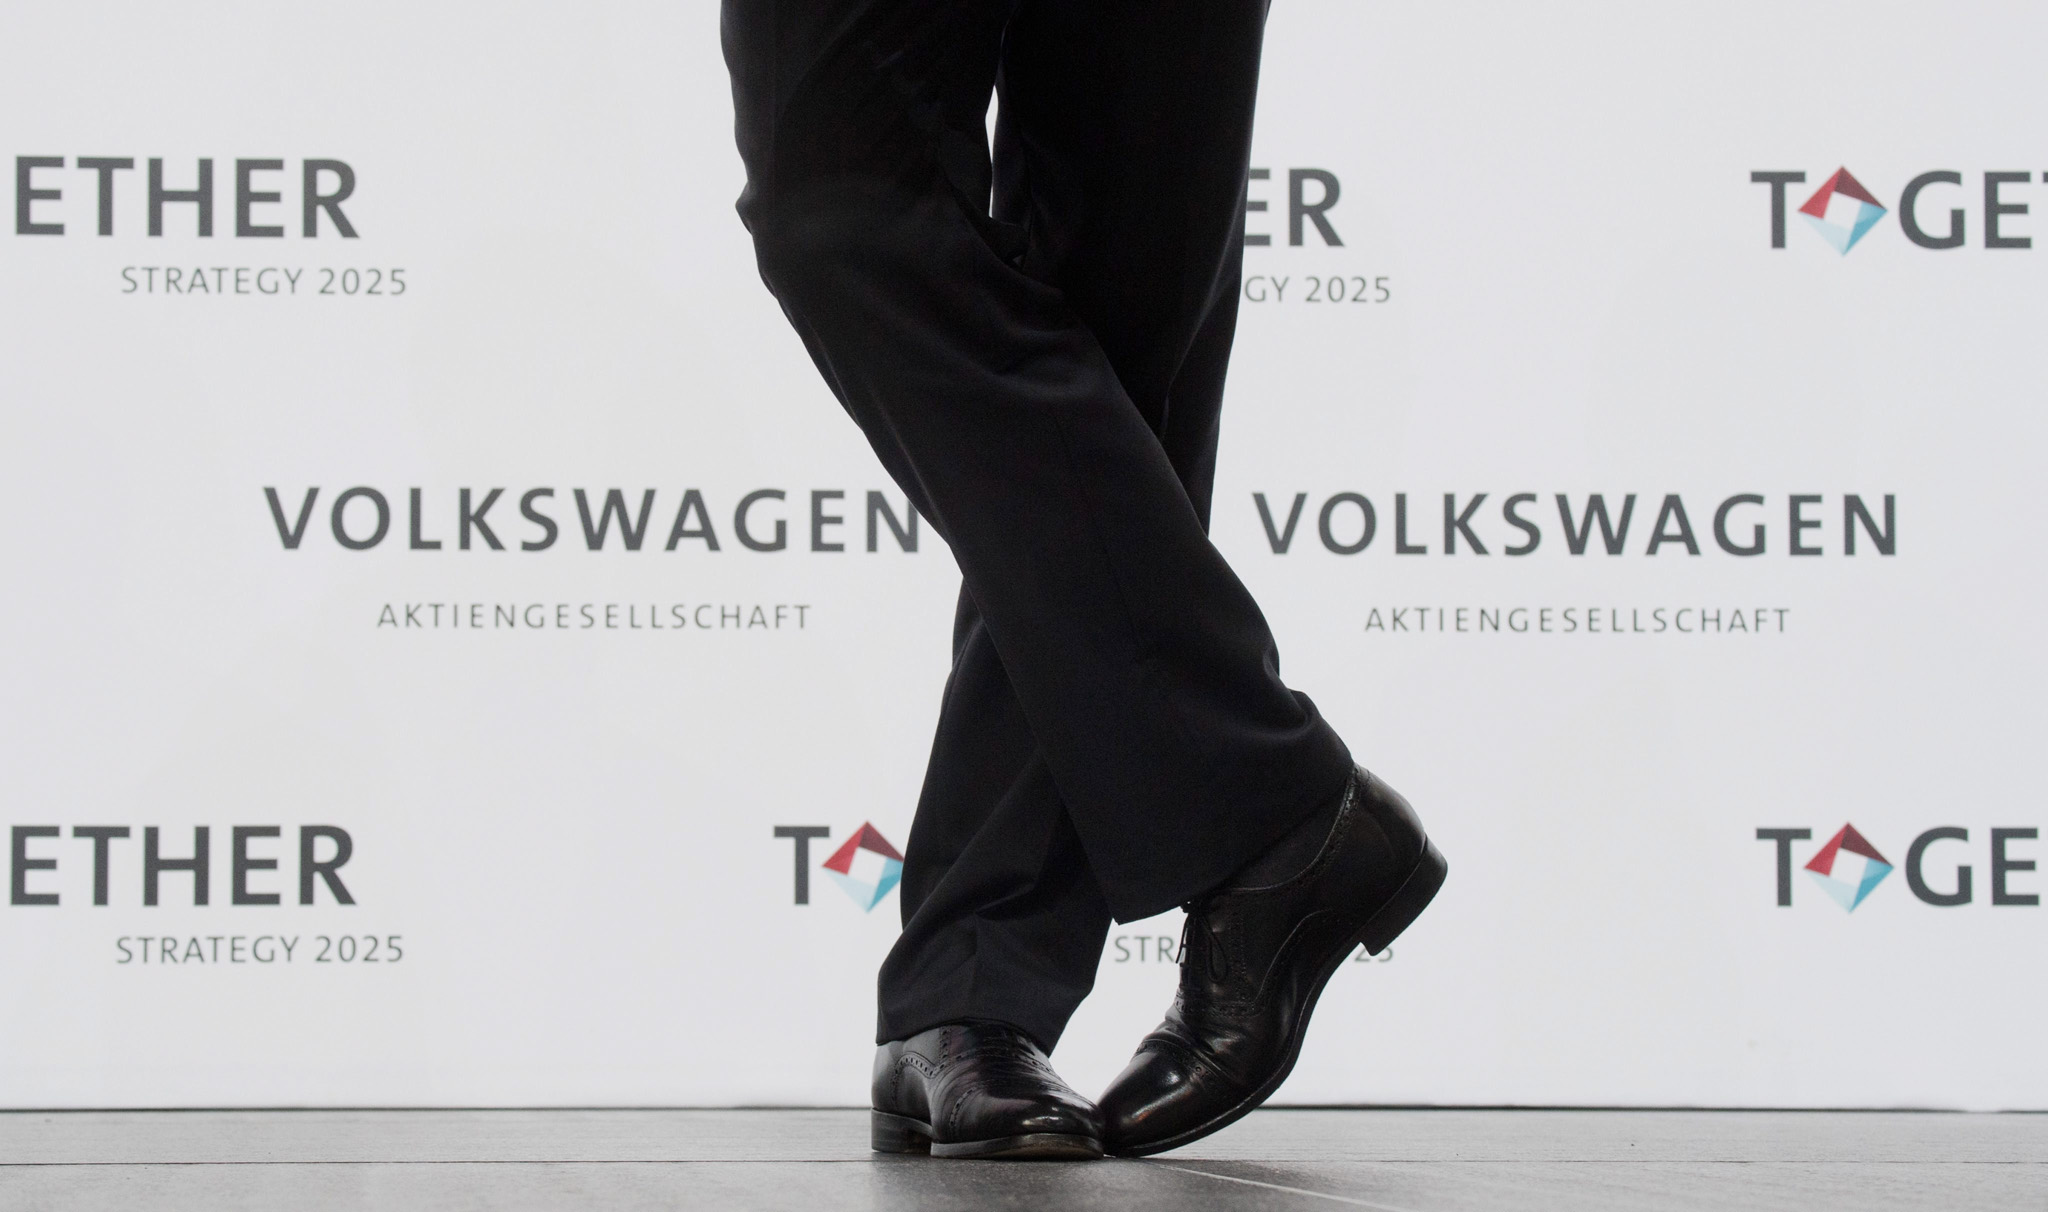 epa05368863 Matthias Mueller, CEO of Volkswagen AG, attends a press conference at the Volkswagen plant in Wolfsburg, Germany, 16 June 2016. The German carmaker Volkswagen (VW) introduced its strategy until the year of 2025.  EPA/JULIAN STRATENSCHULTE